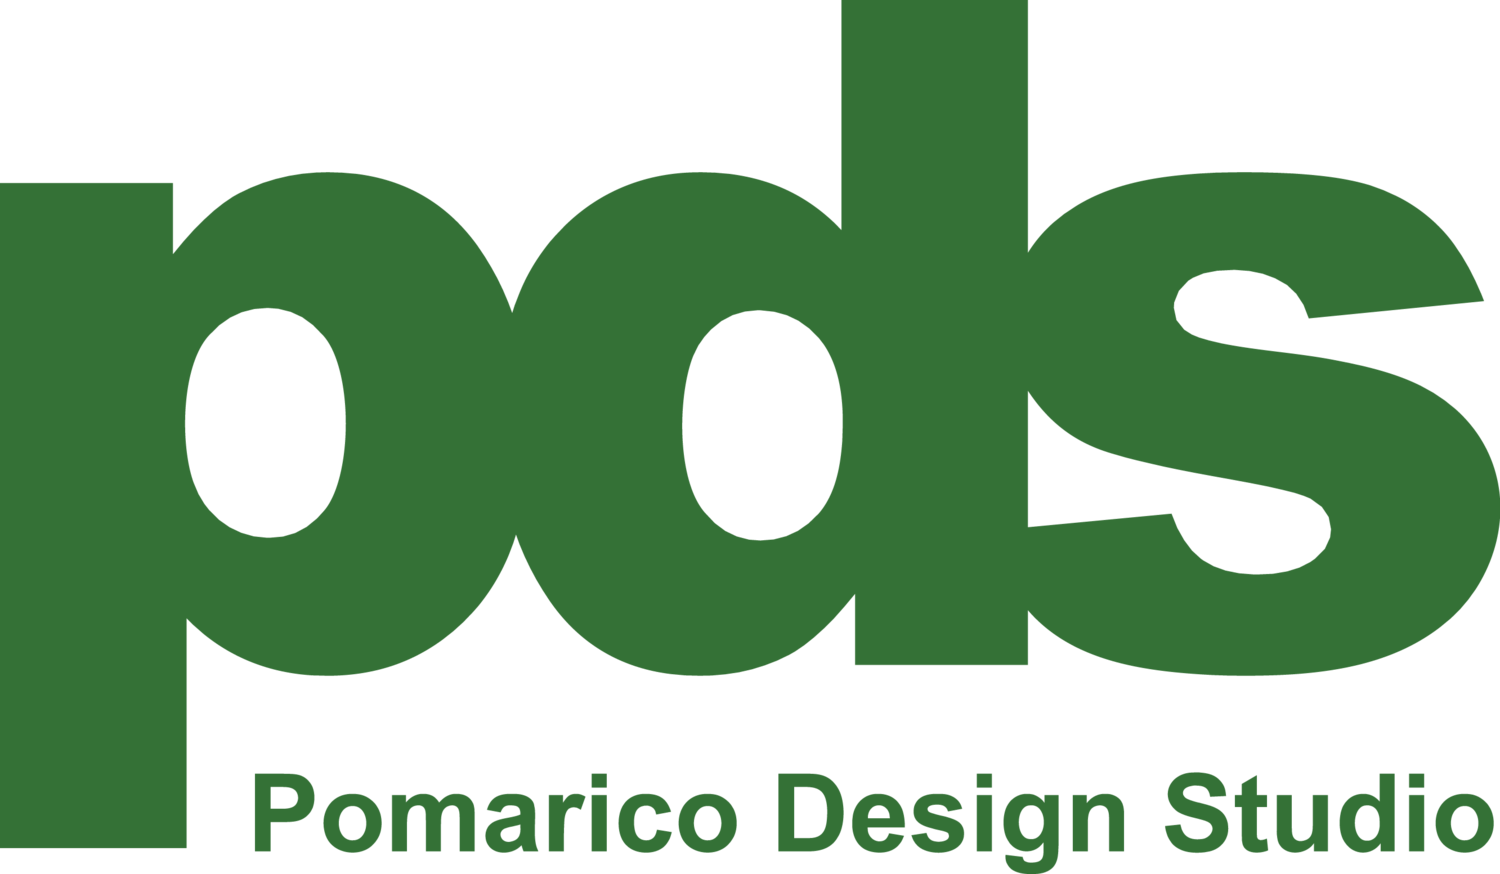 Pomarico Design Studio